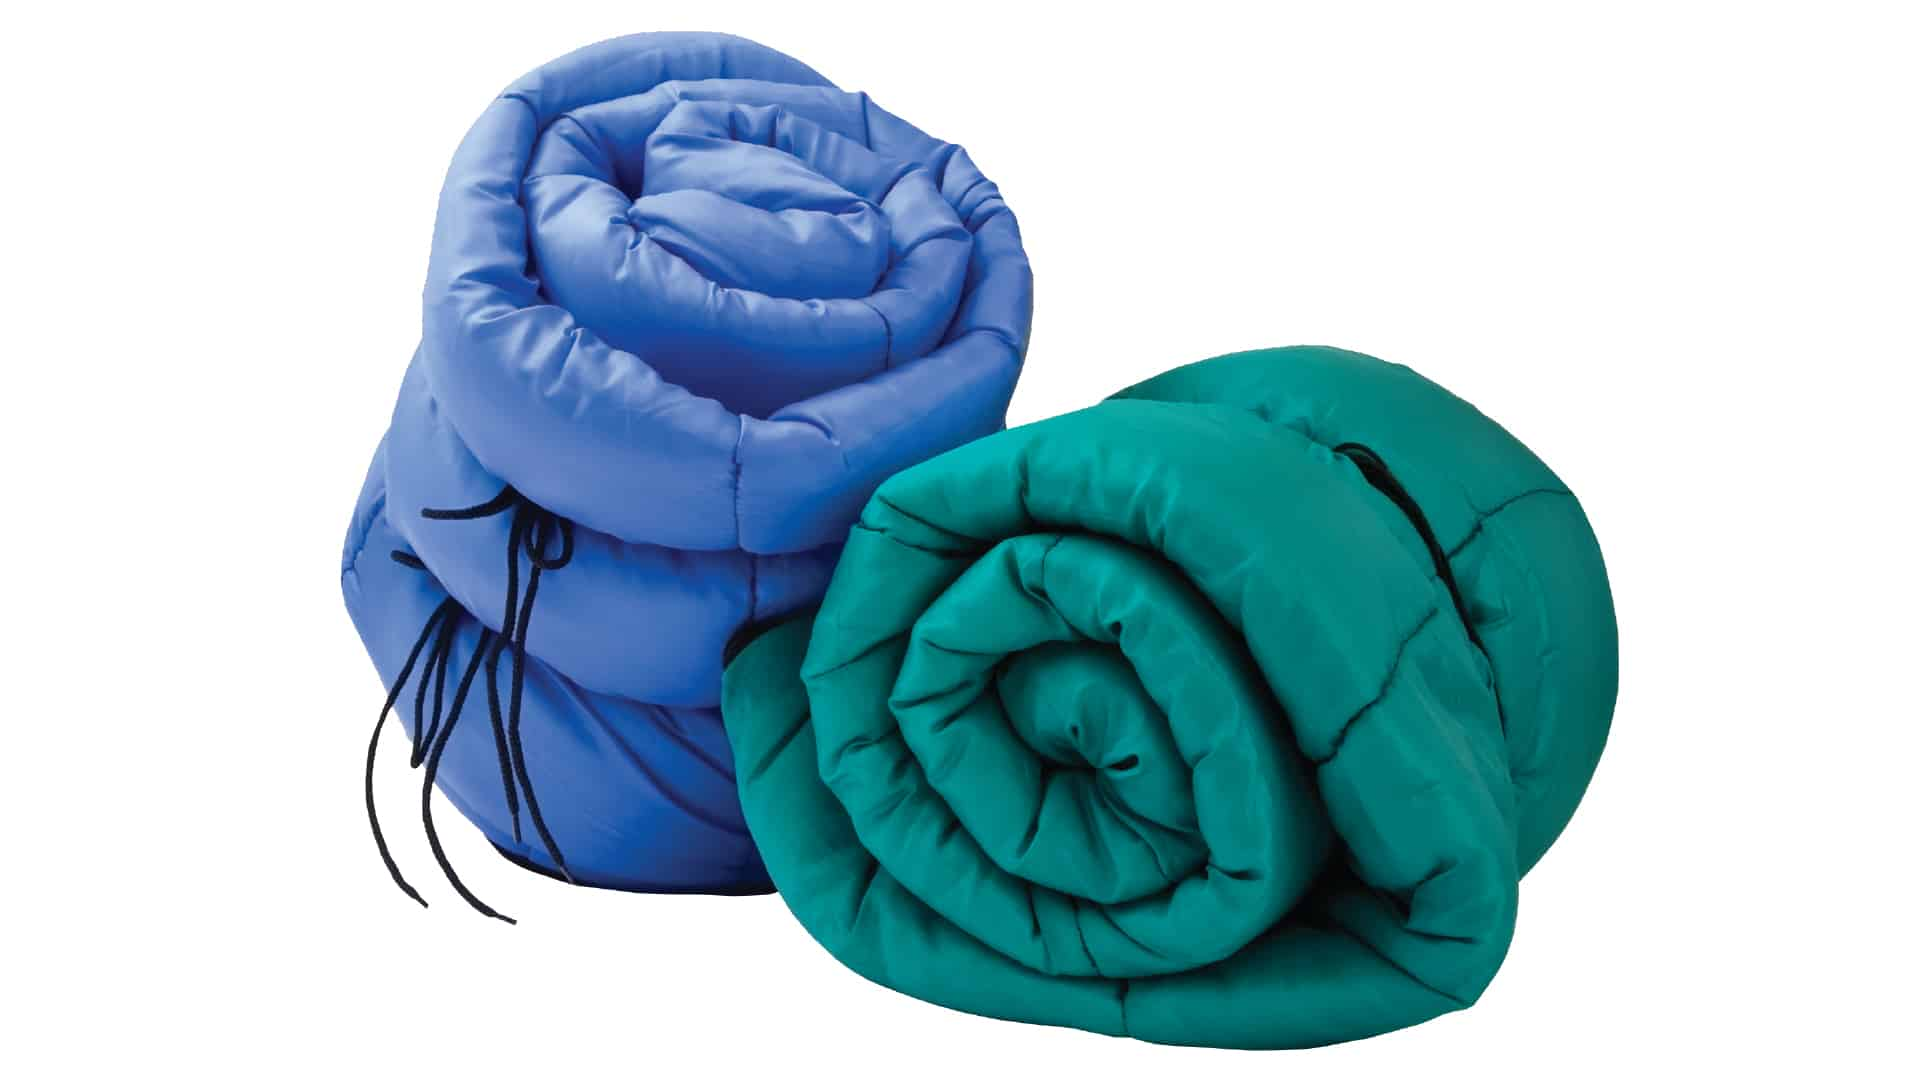 We clean your sleeping bags so they are fresh for camping season.